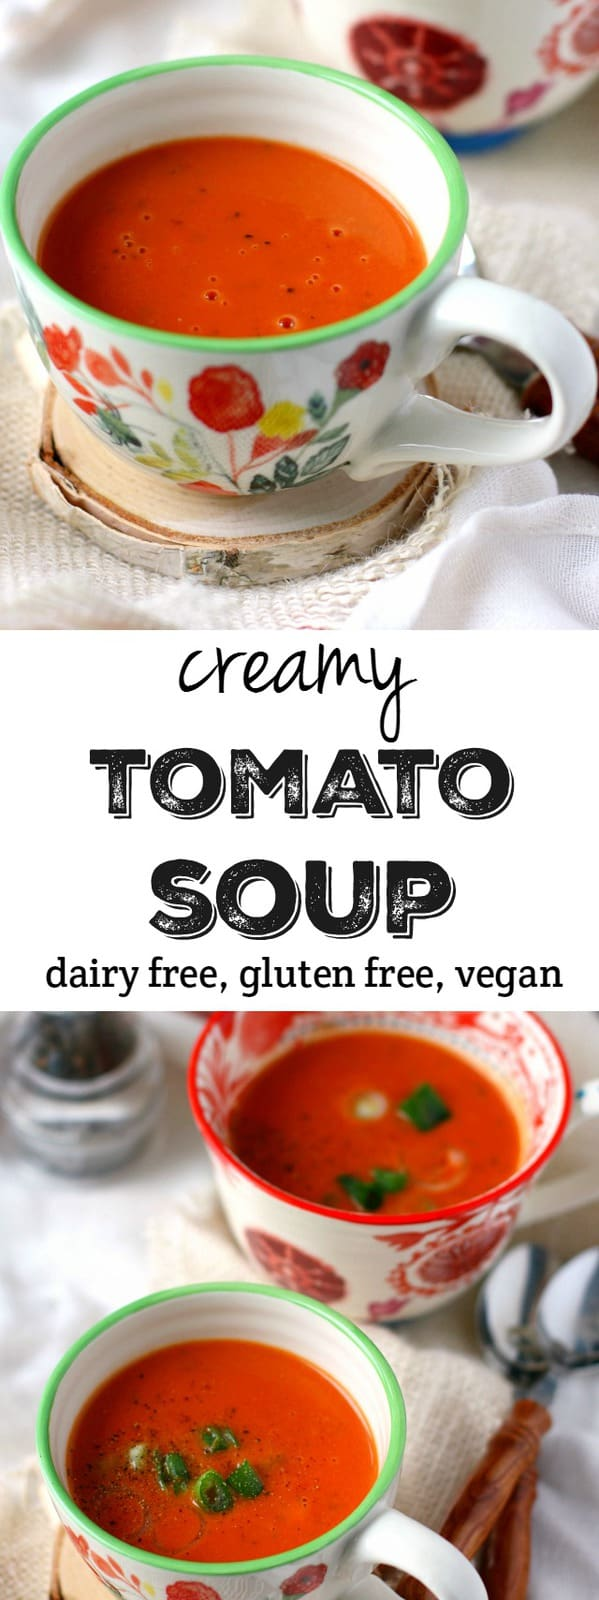 Creamy, comforting, delicious tomato soup made dairy free! This version is so much better than anything you can buy in the store! #dairyfree #vegan #glutenfree